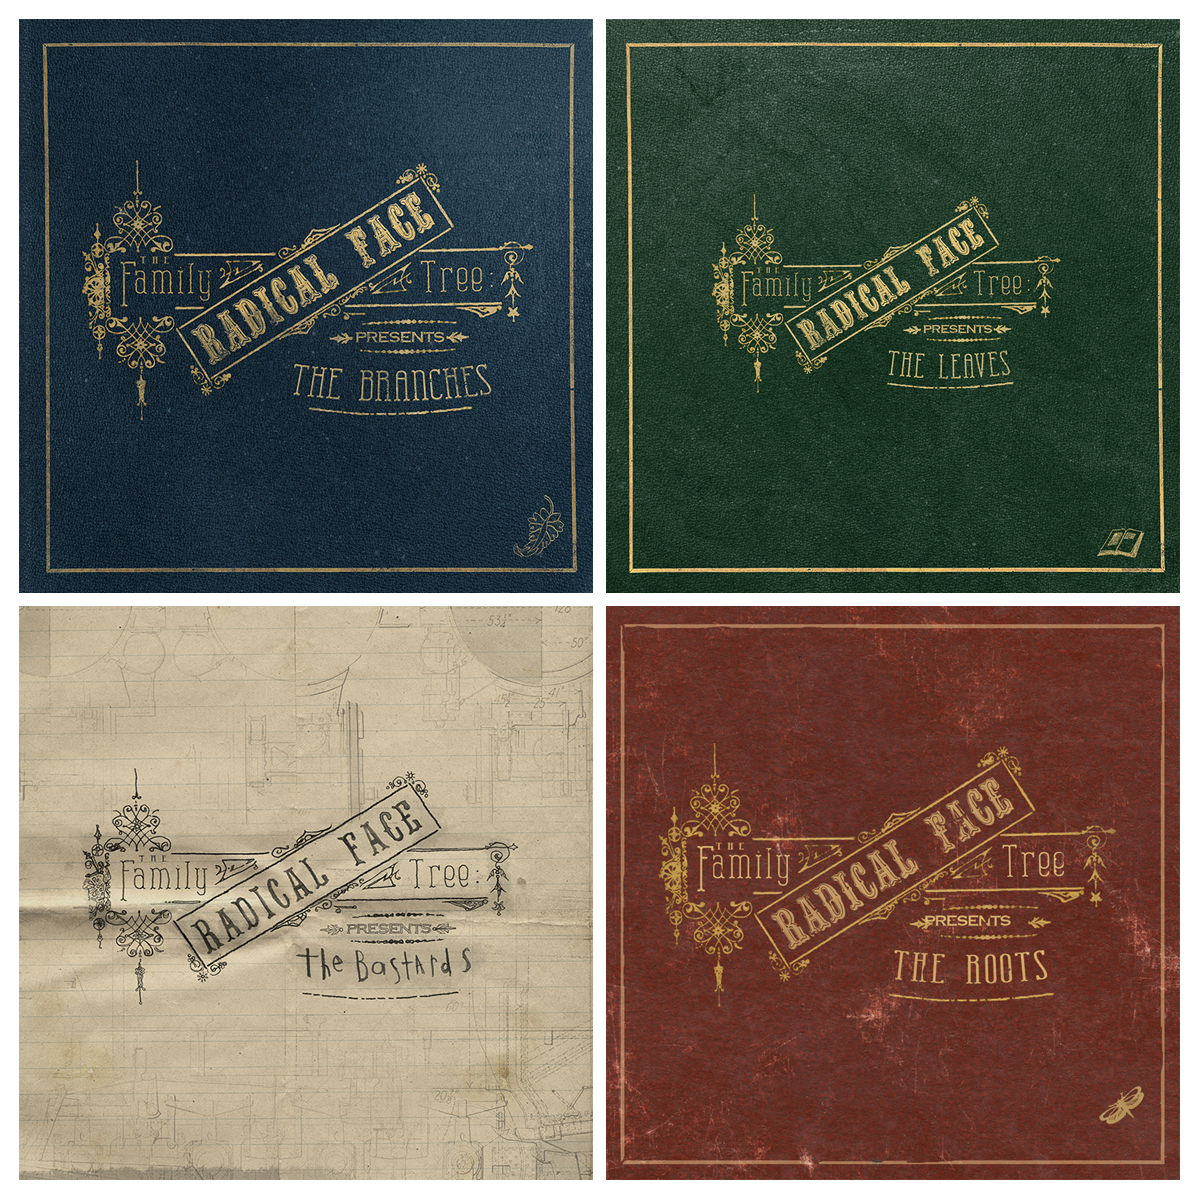 Deluxe CD Book Box Set